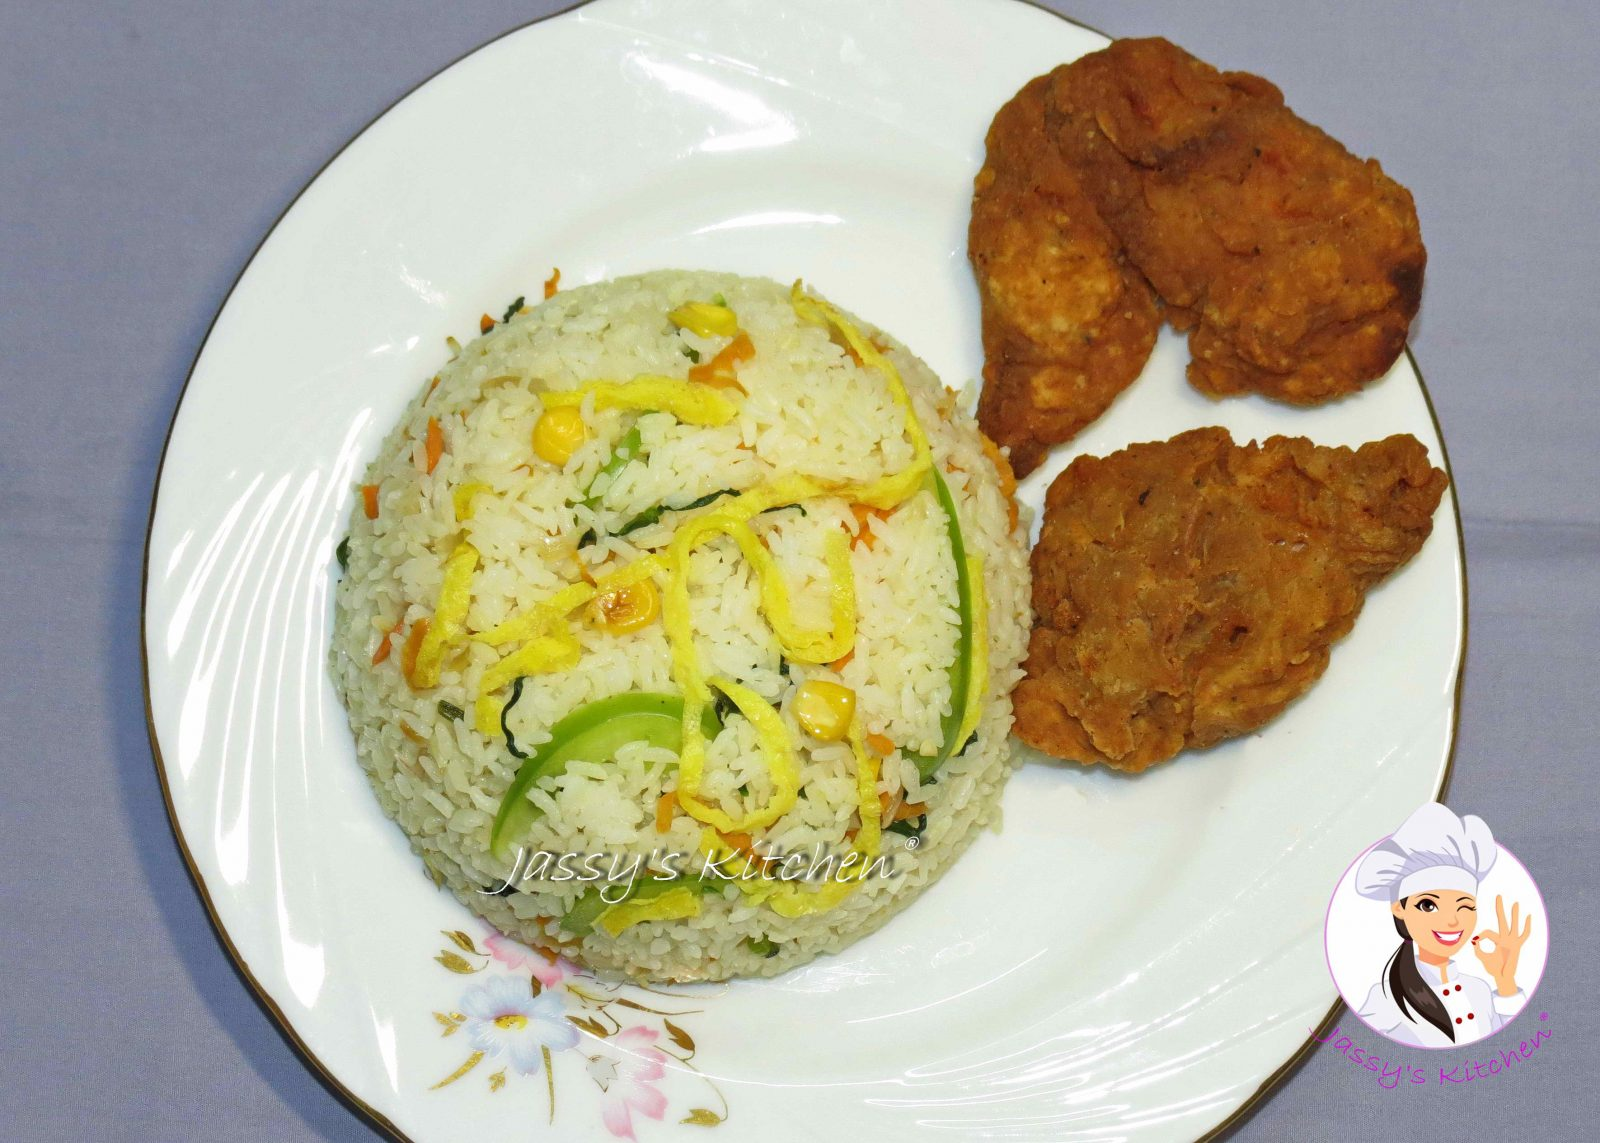 Chinese Fried Rice & Fried Chicken Wings from Jassy's Kitchen